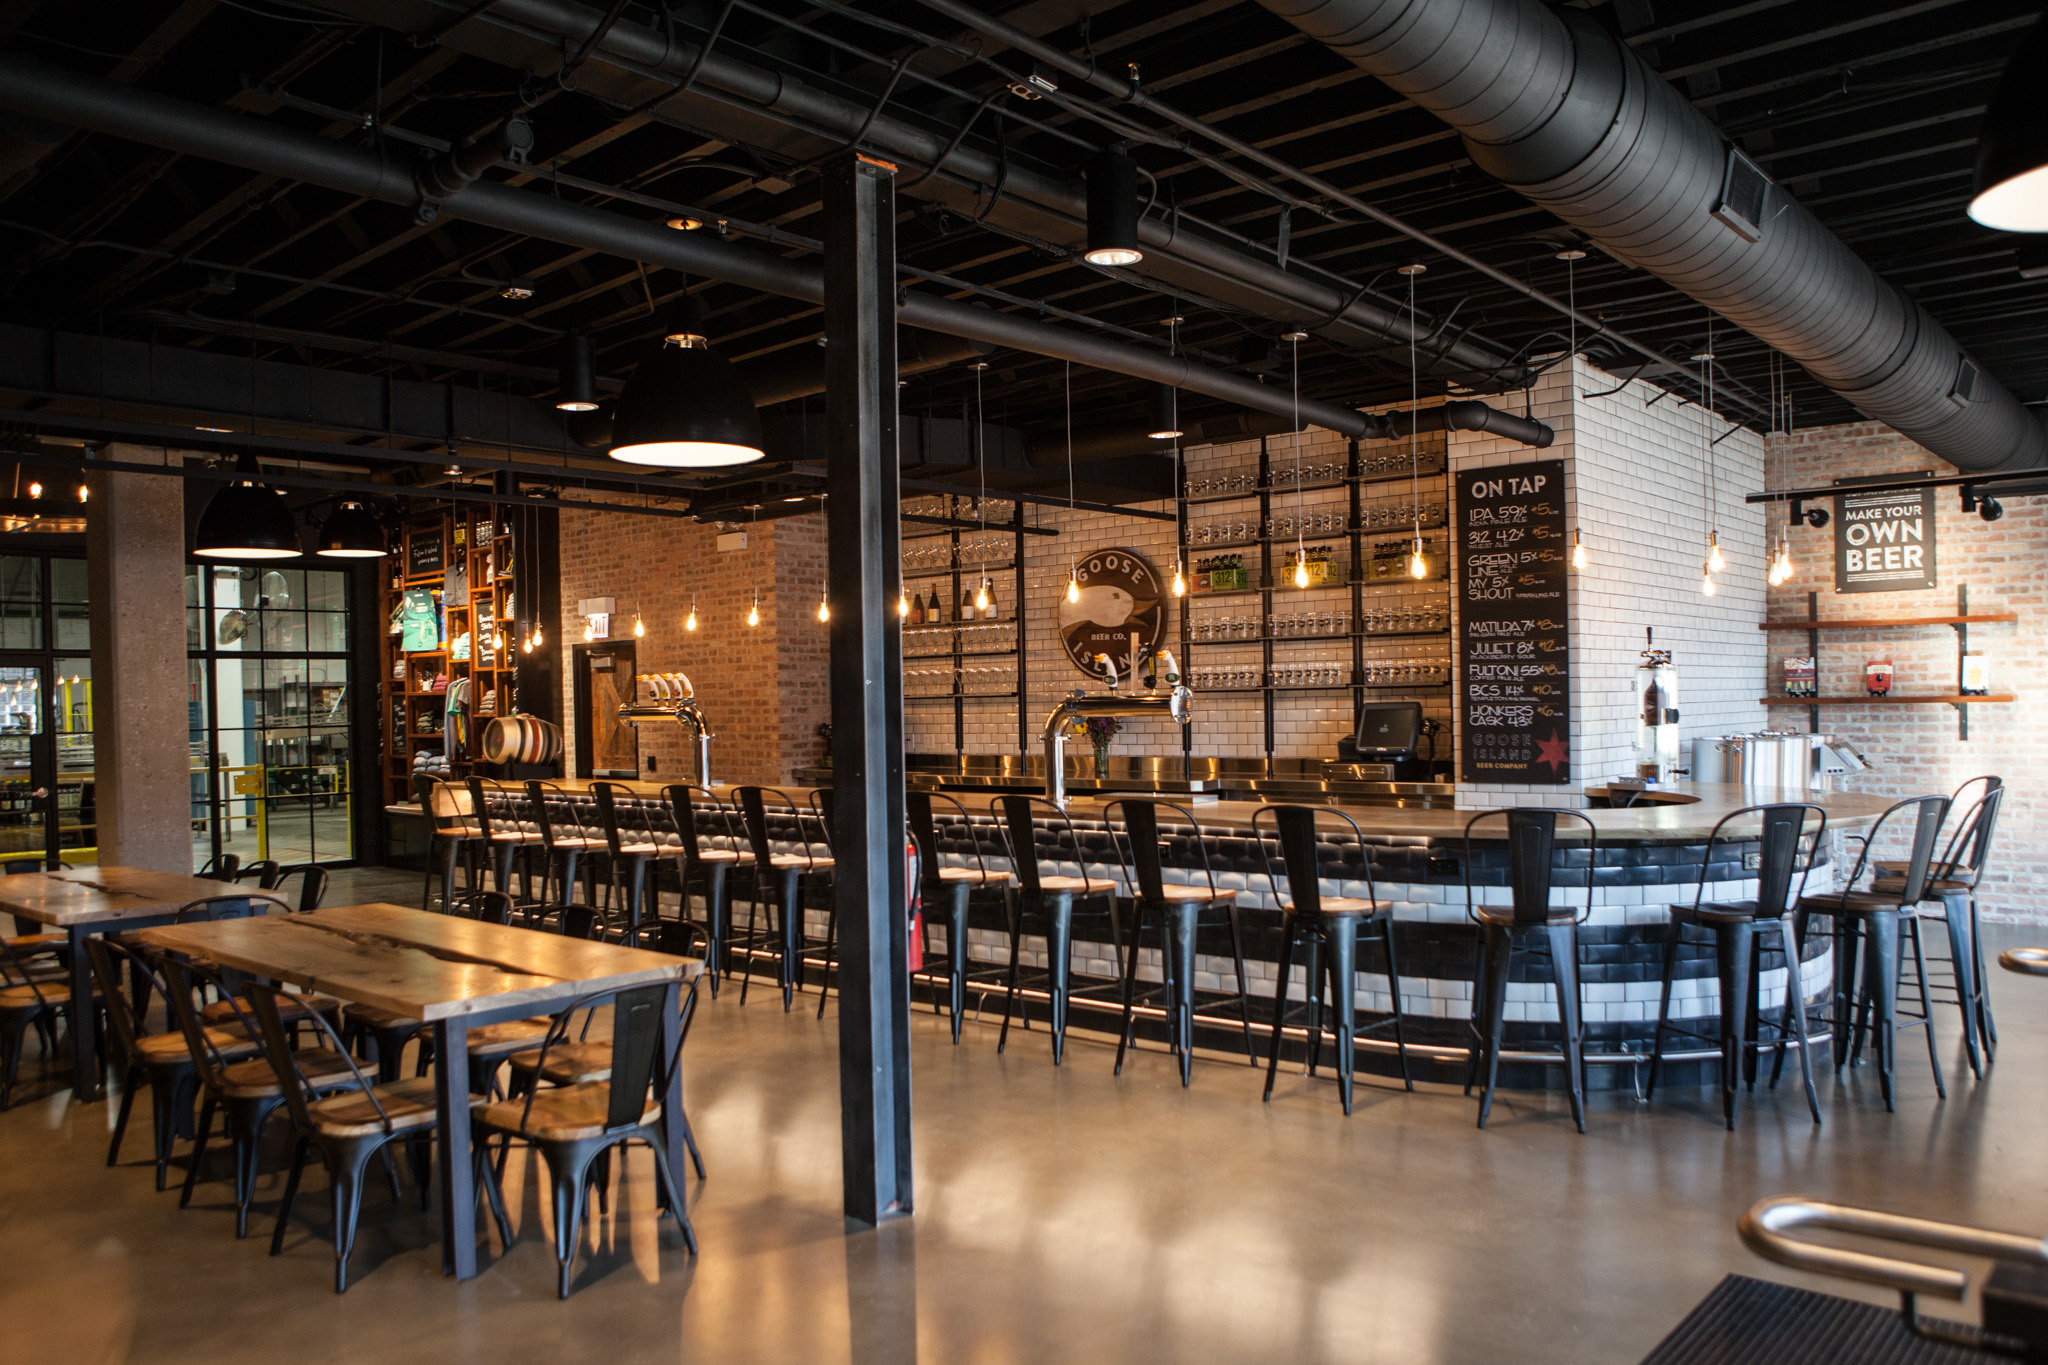 Goose Island has added a new taproom to their Fulton Market brewery.